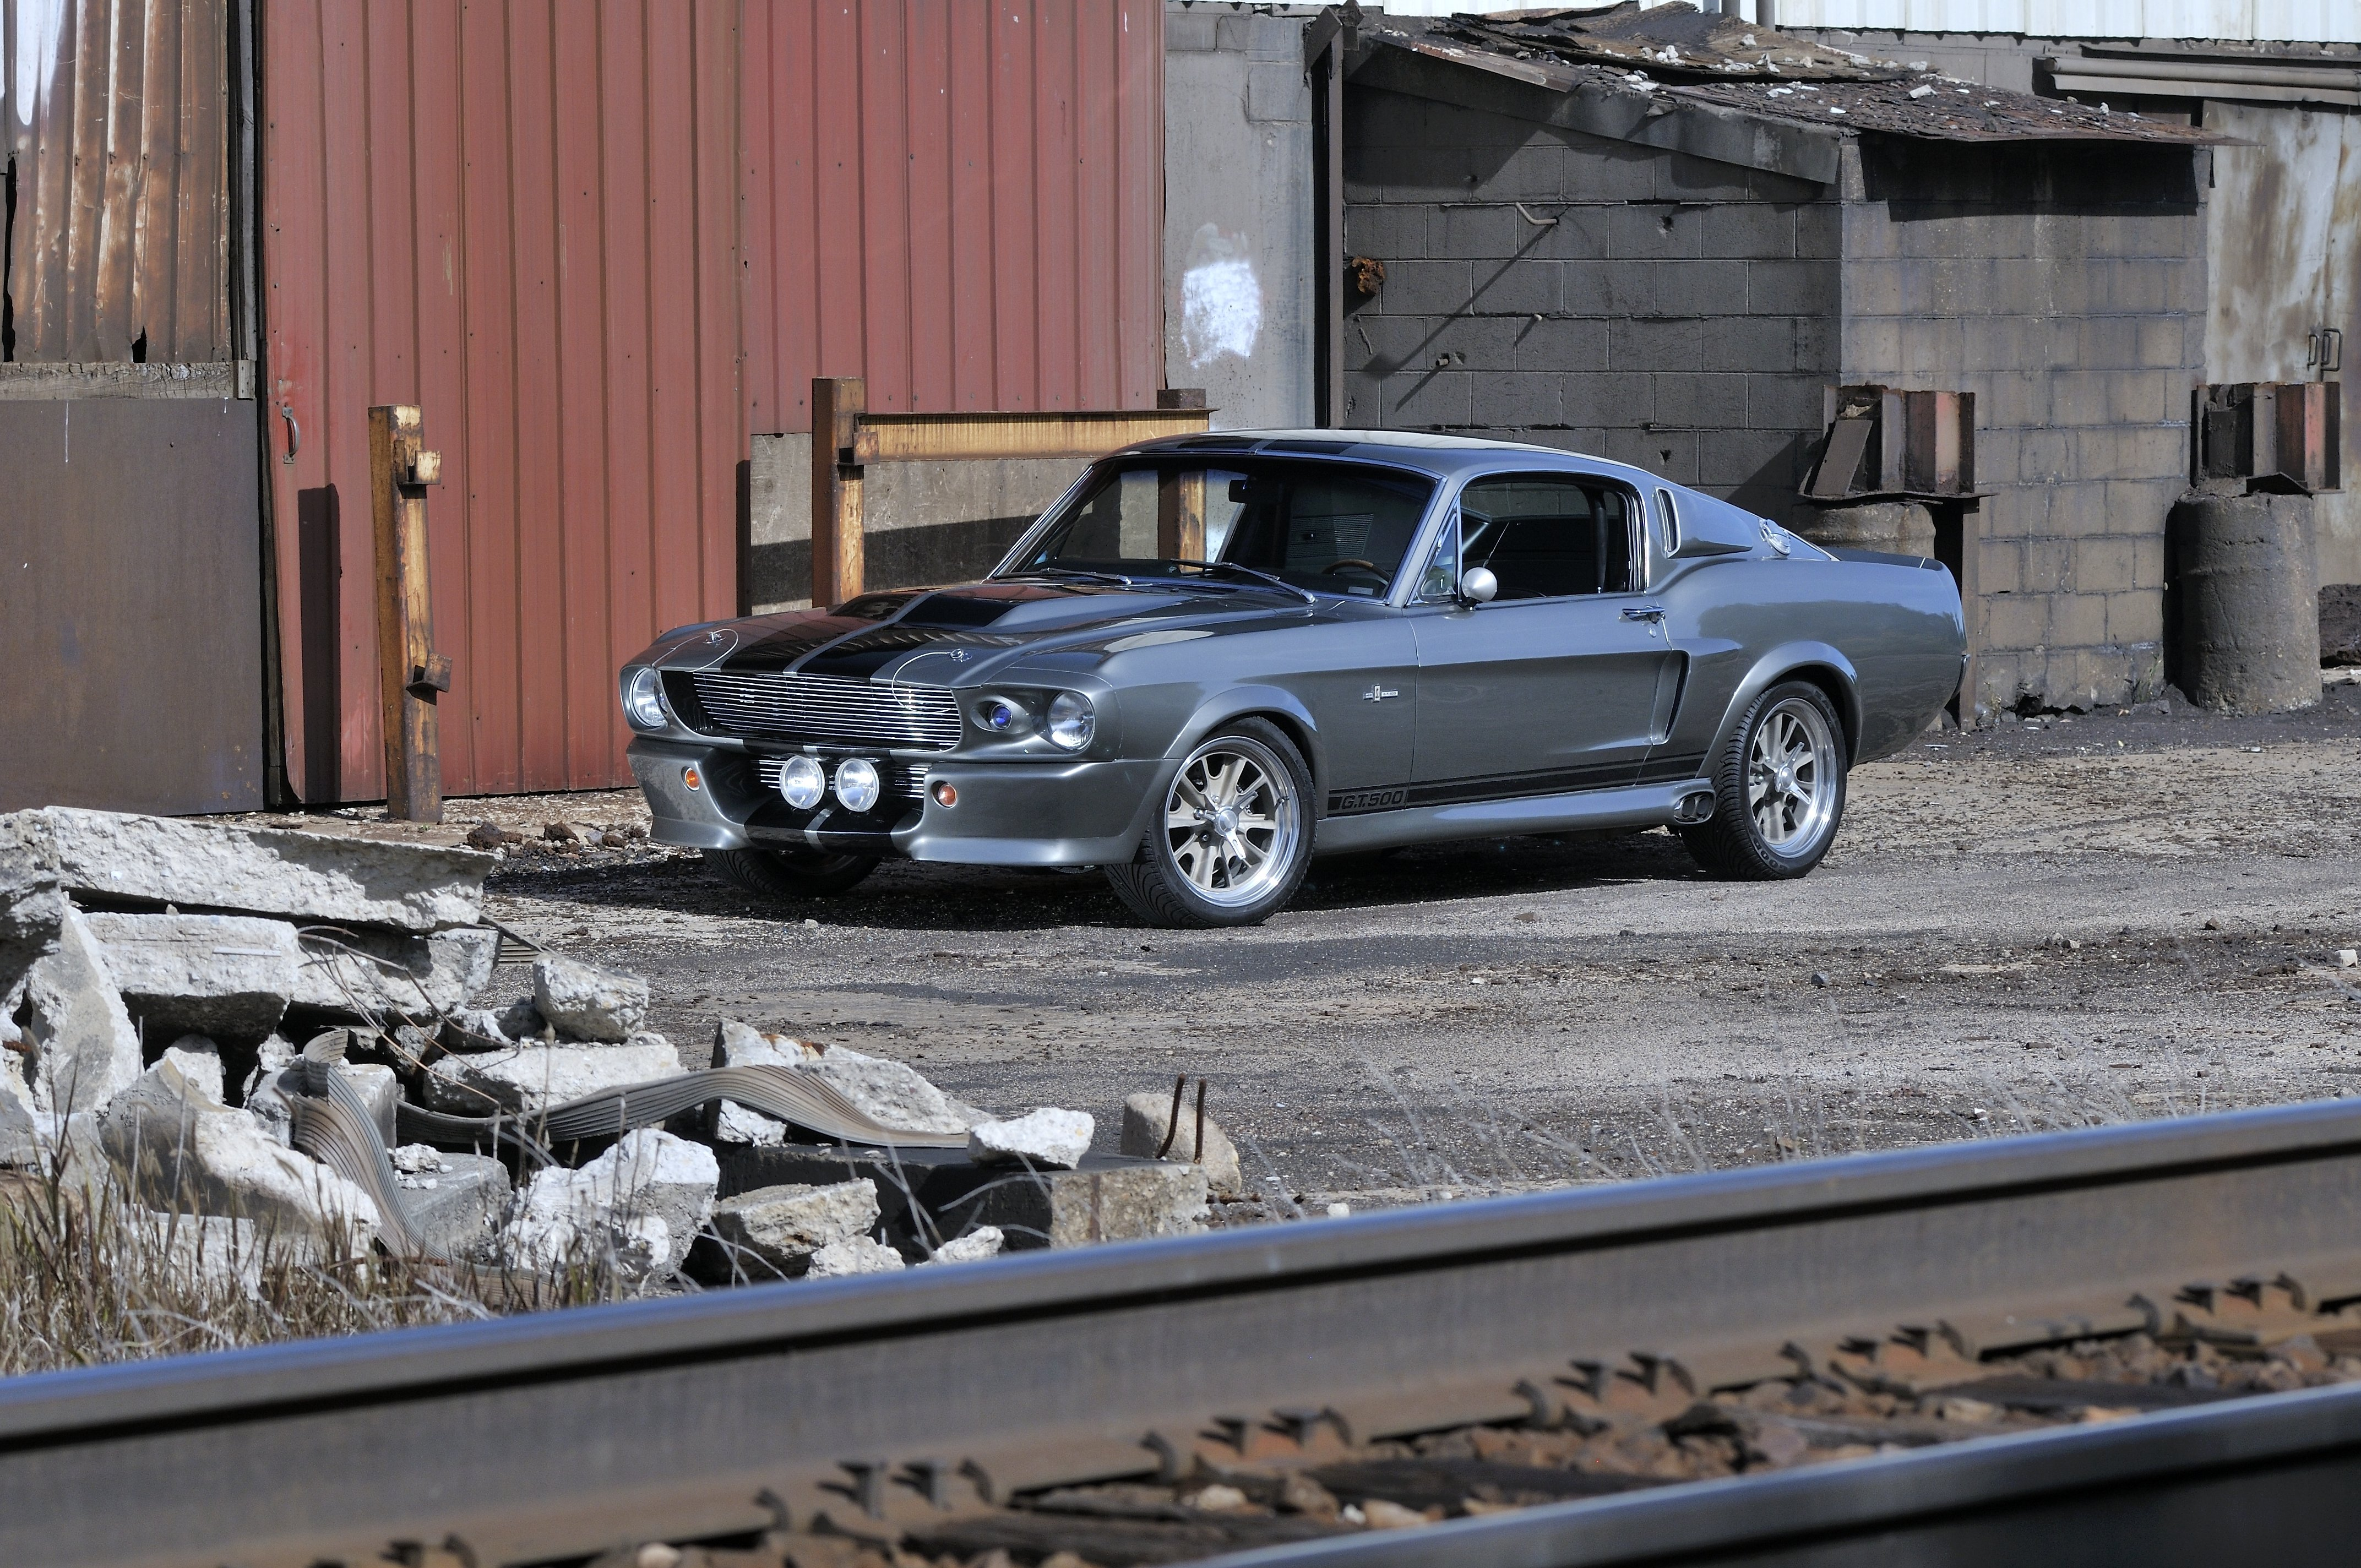 1967 ford mustang shelby gt500 eleanor gone in 60 seconds muscle street rod machine usa 4288x2848 15 wallpaper 4288x2848 653481 wallpaperup - Shelby Mustang Gone In 60 Seconds